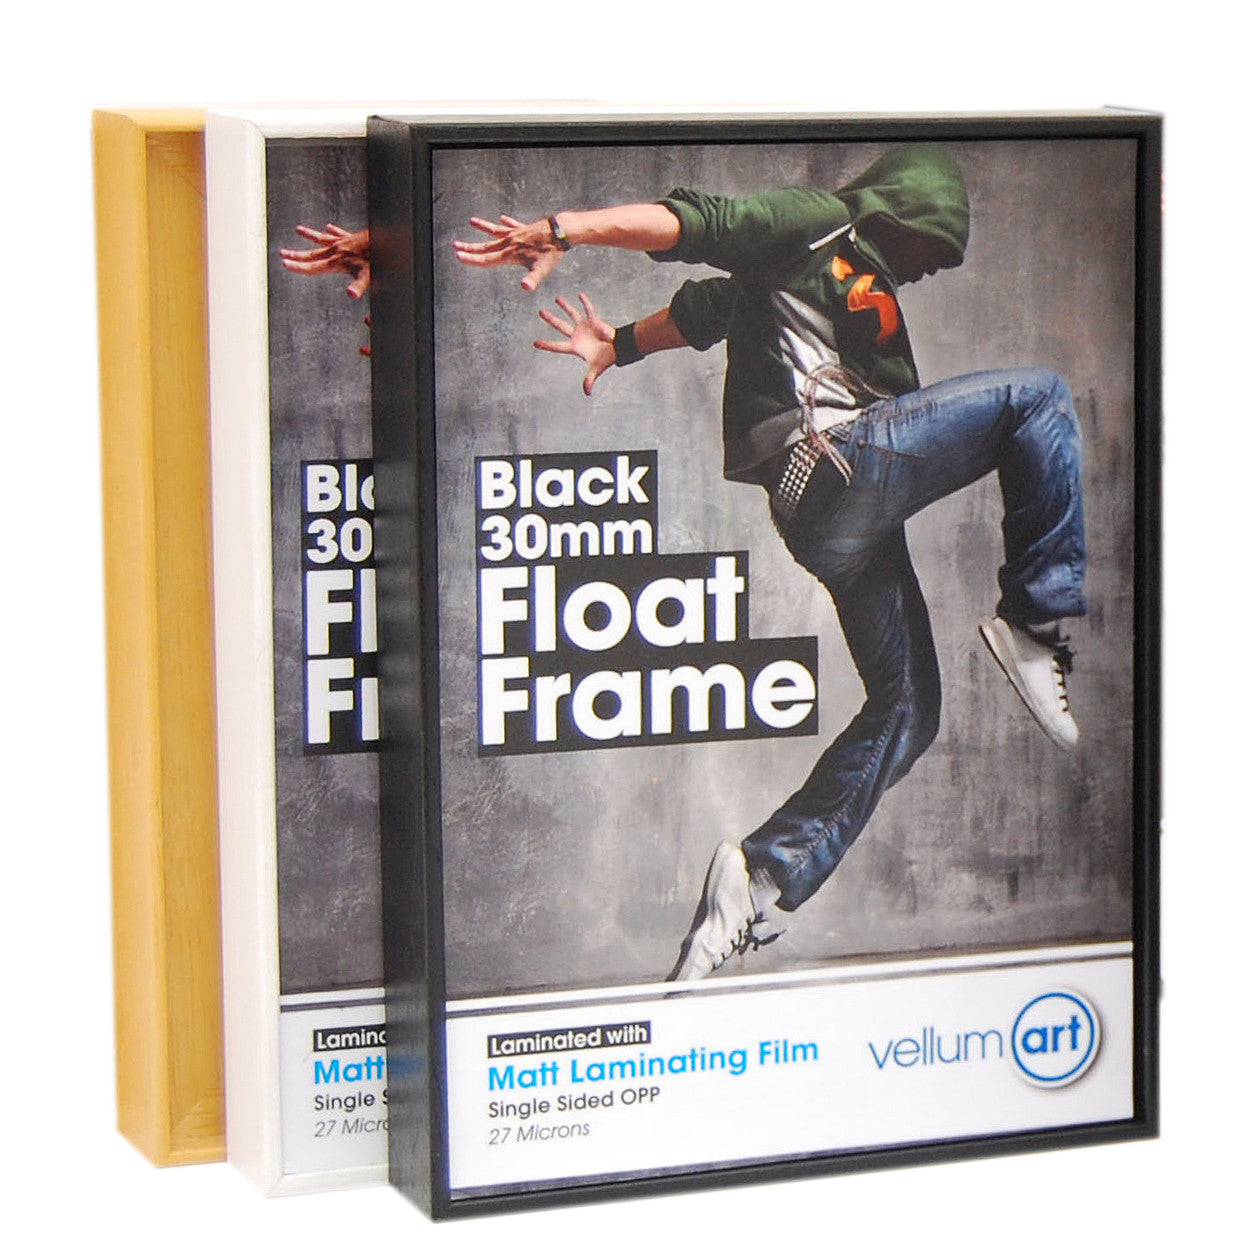 Float Frame Packs 30mm [Square] with 5mm Foam Board] - mountingsubstrates.com